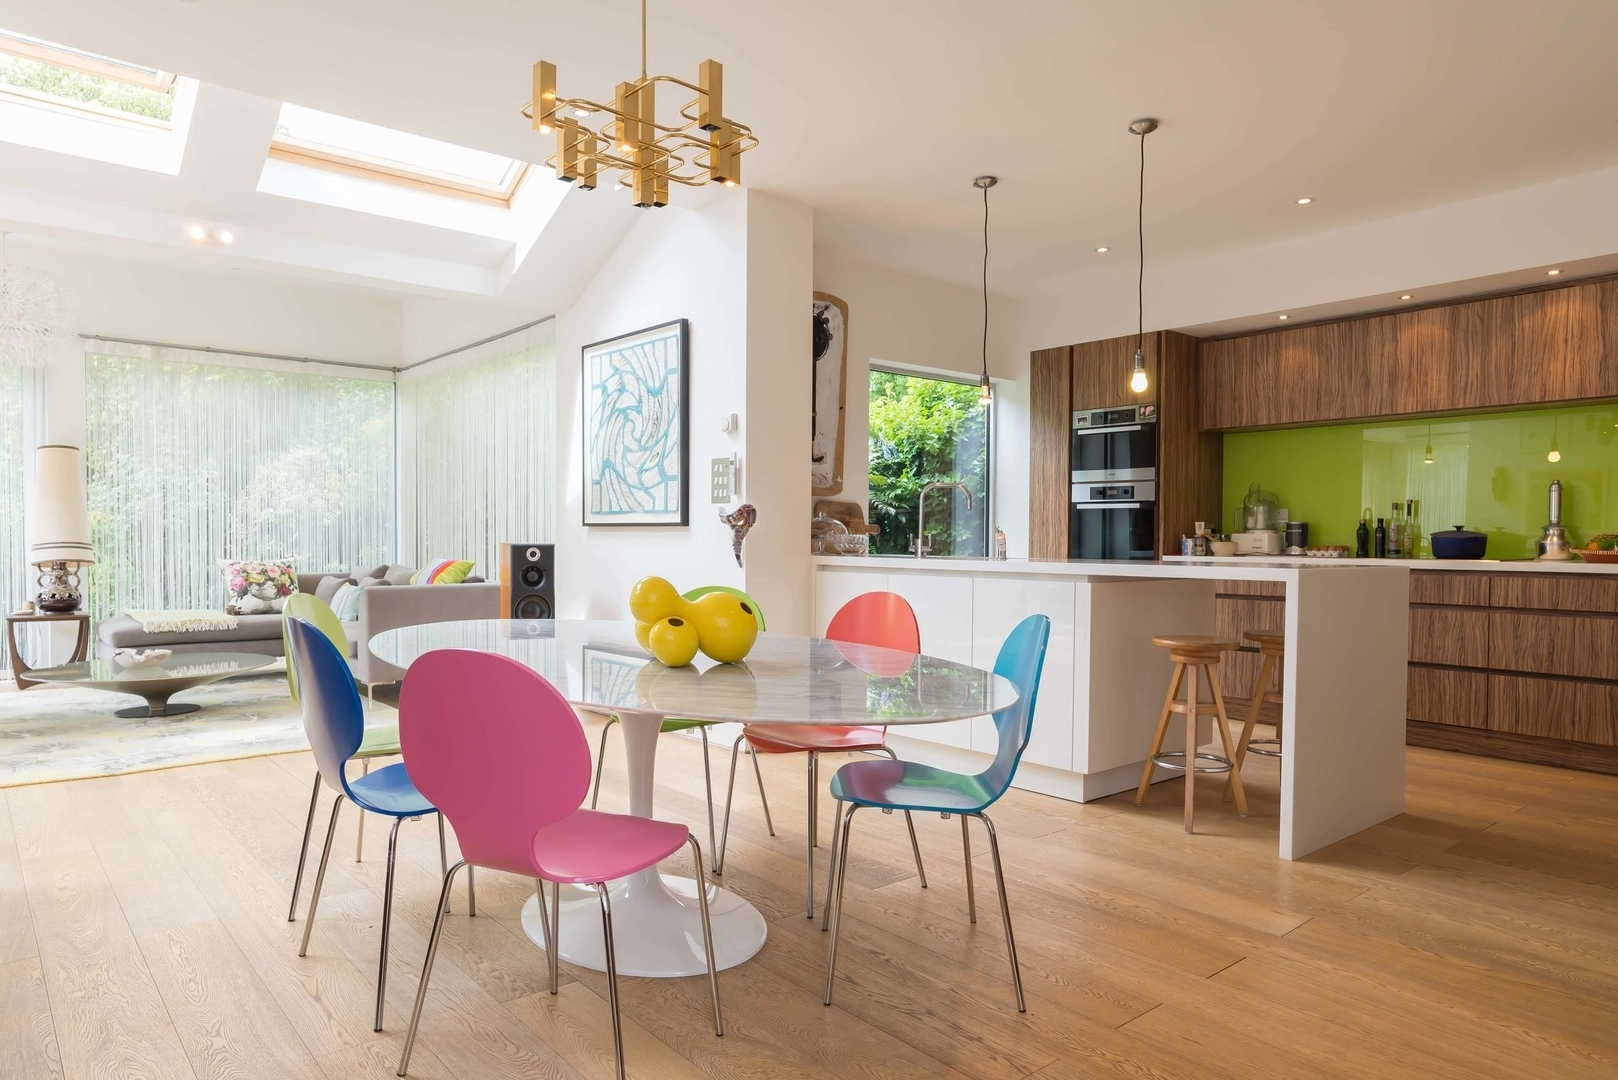 The Smartie House – 3 Bed House In Richmond • Veeve Throughout Most Recent Smartie Dining Tables And Chairs (View 19 of 25)